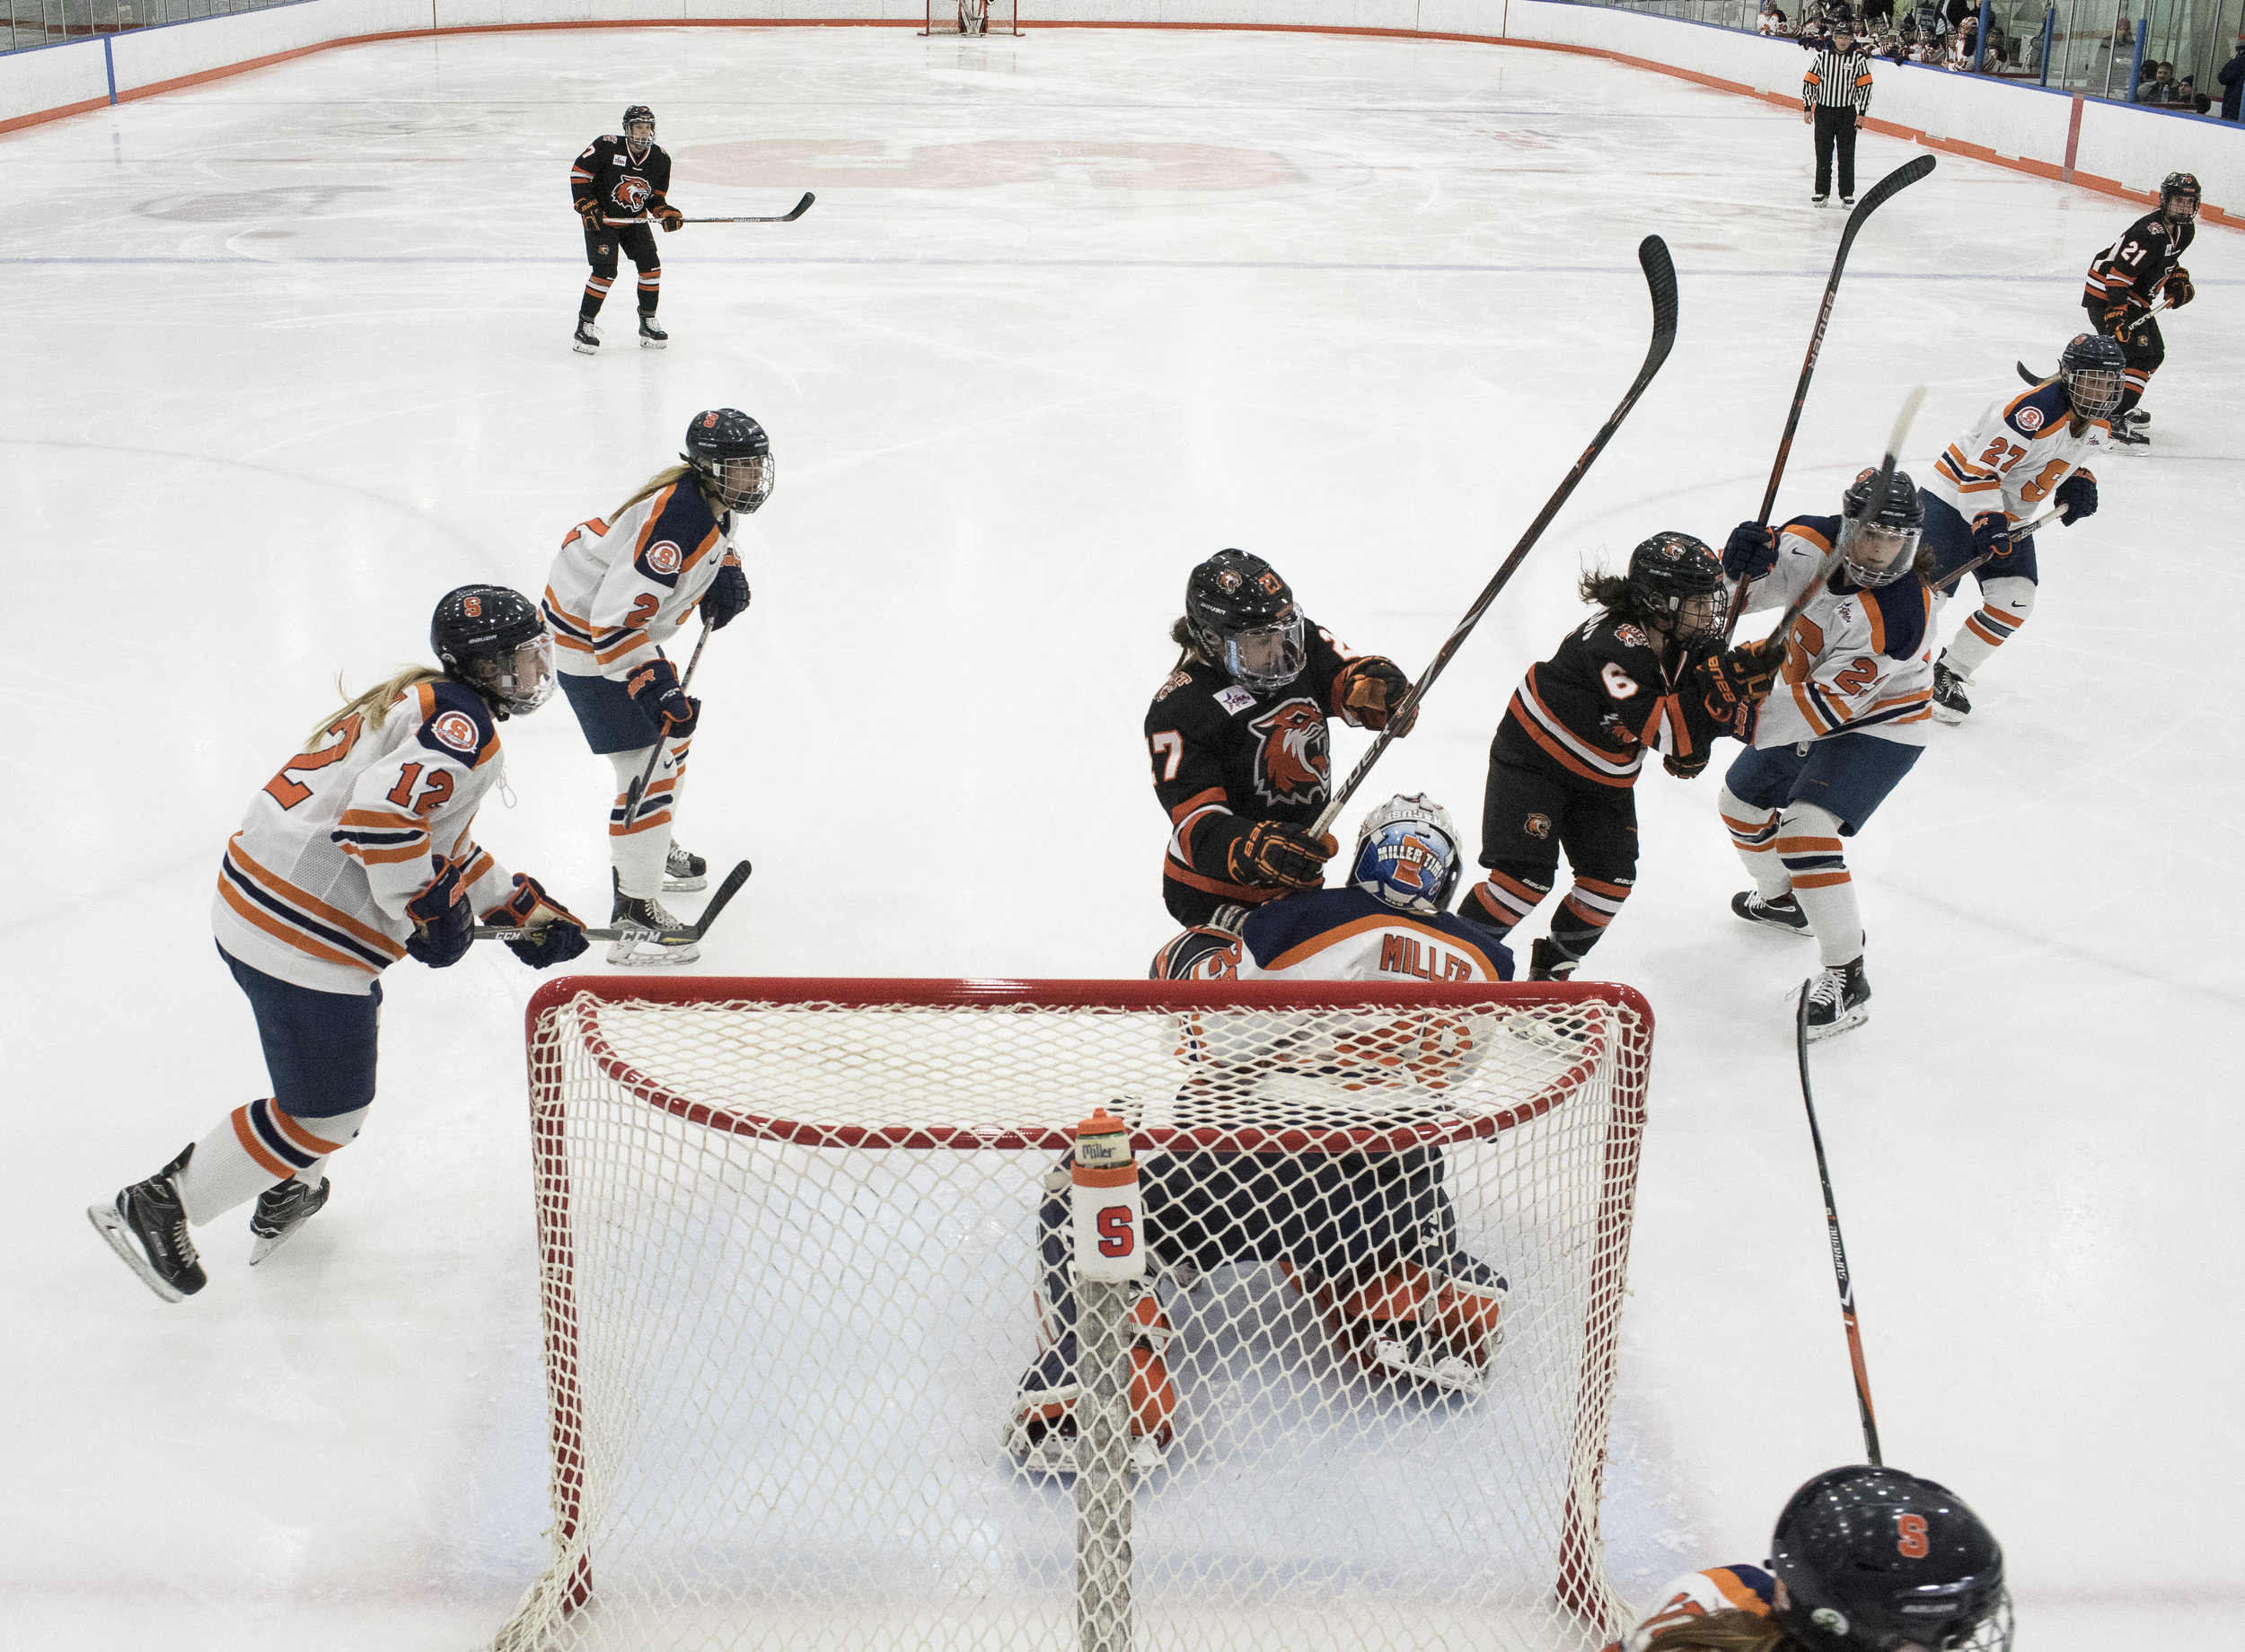 Rochester Institute of Technology's women's hockey players and Syracuse University's players turn towards the puck on Feb. 9, 2017 at Tennity Ice Pavilion, Syracuse N.Y. RIT Women's Hockey team lost to Syracuse University with a final score of (1-7).